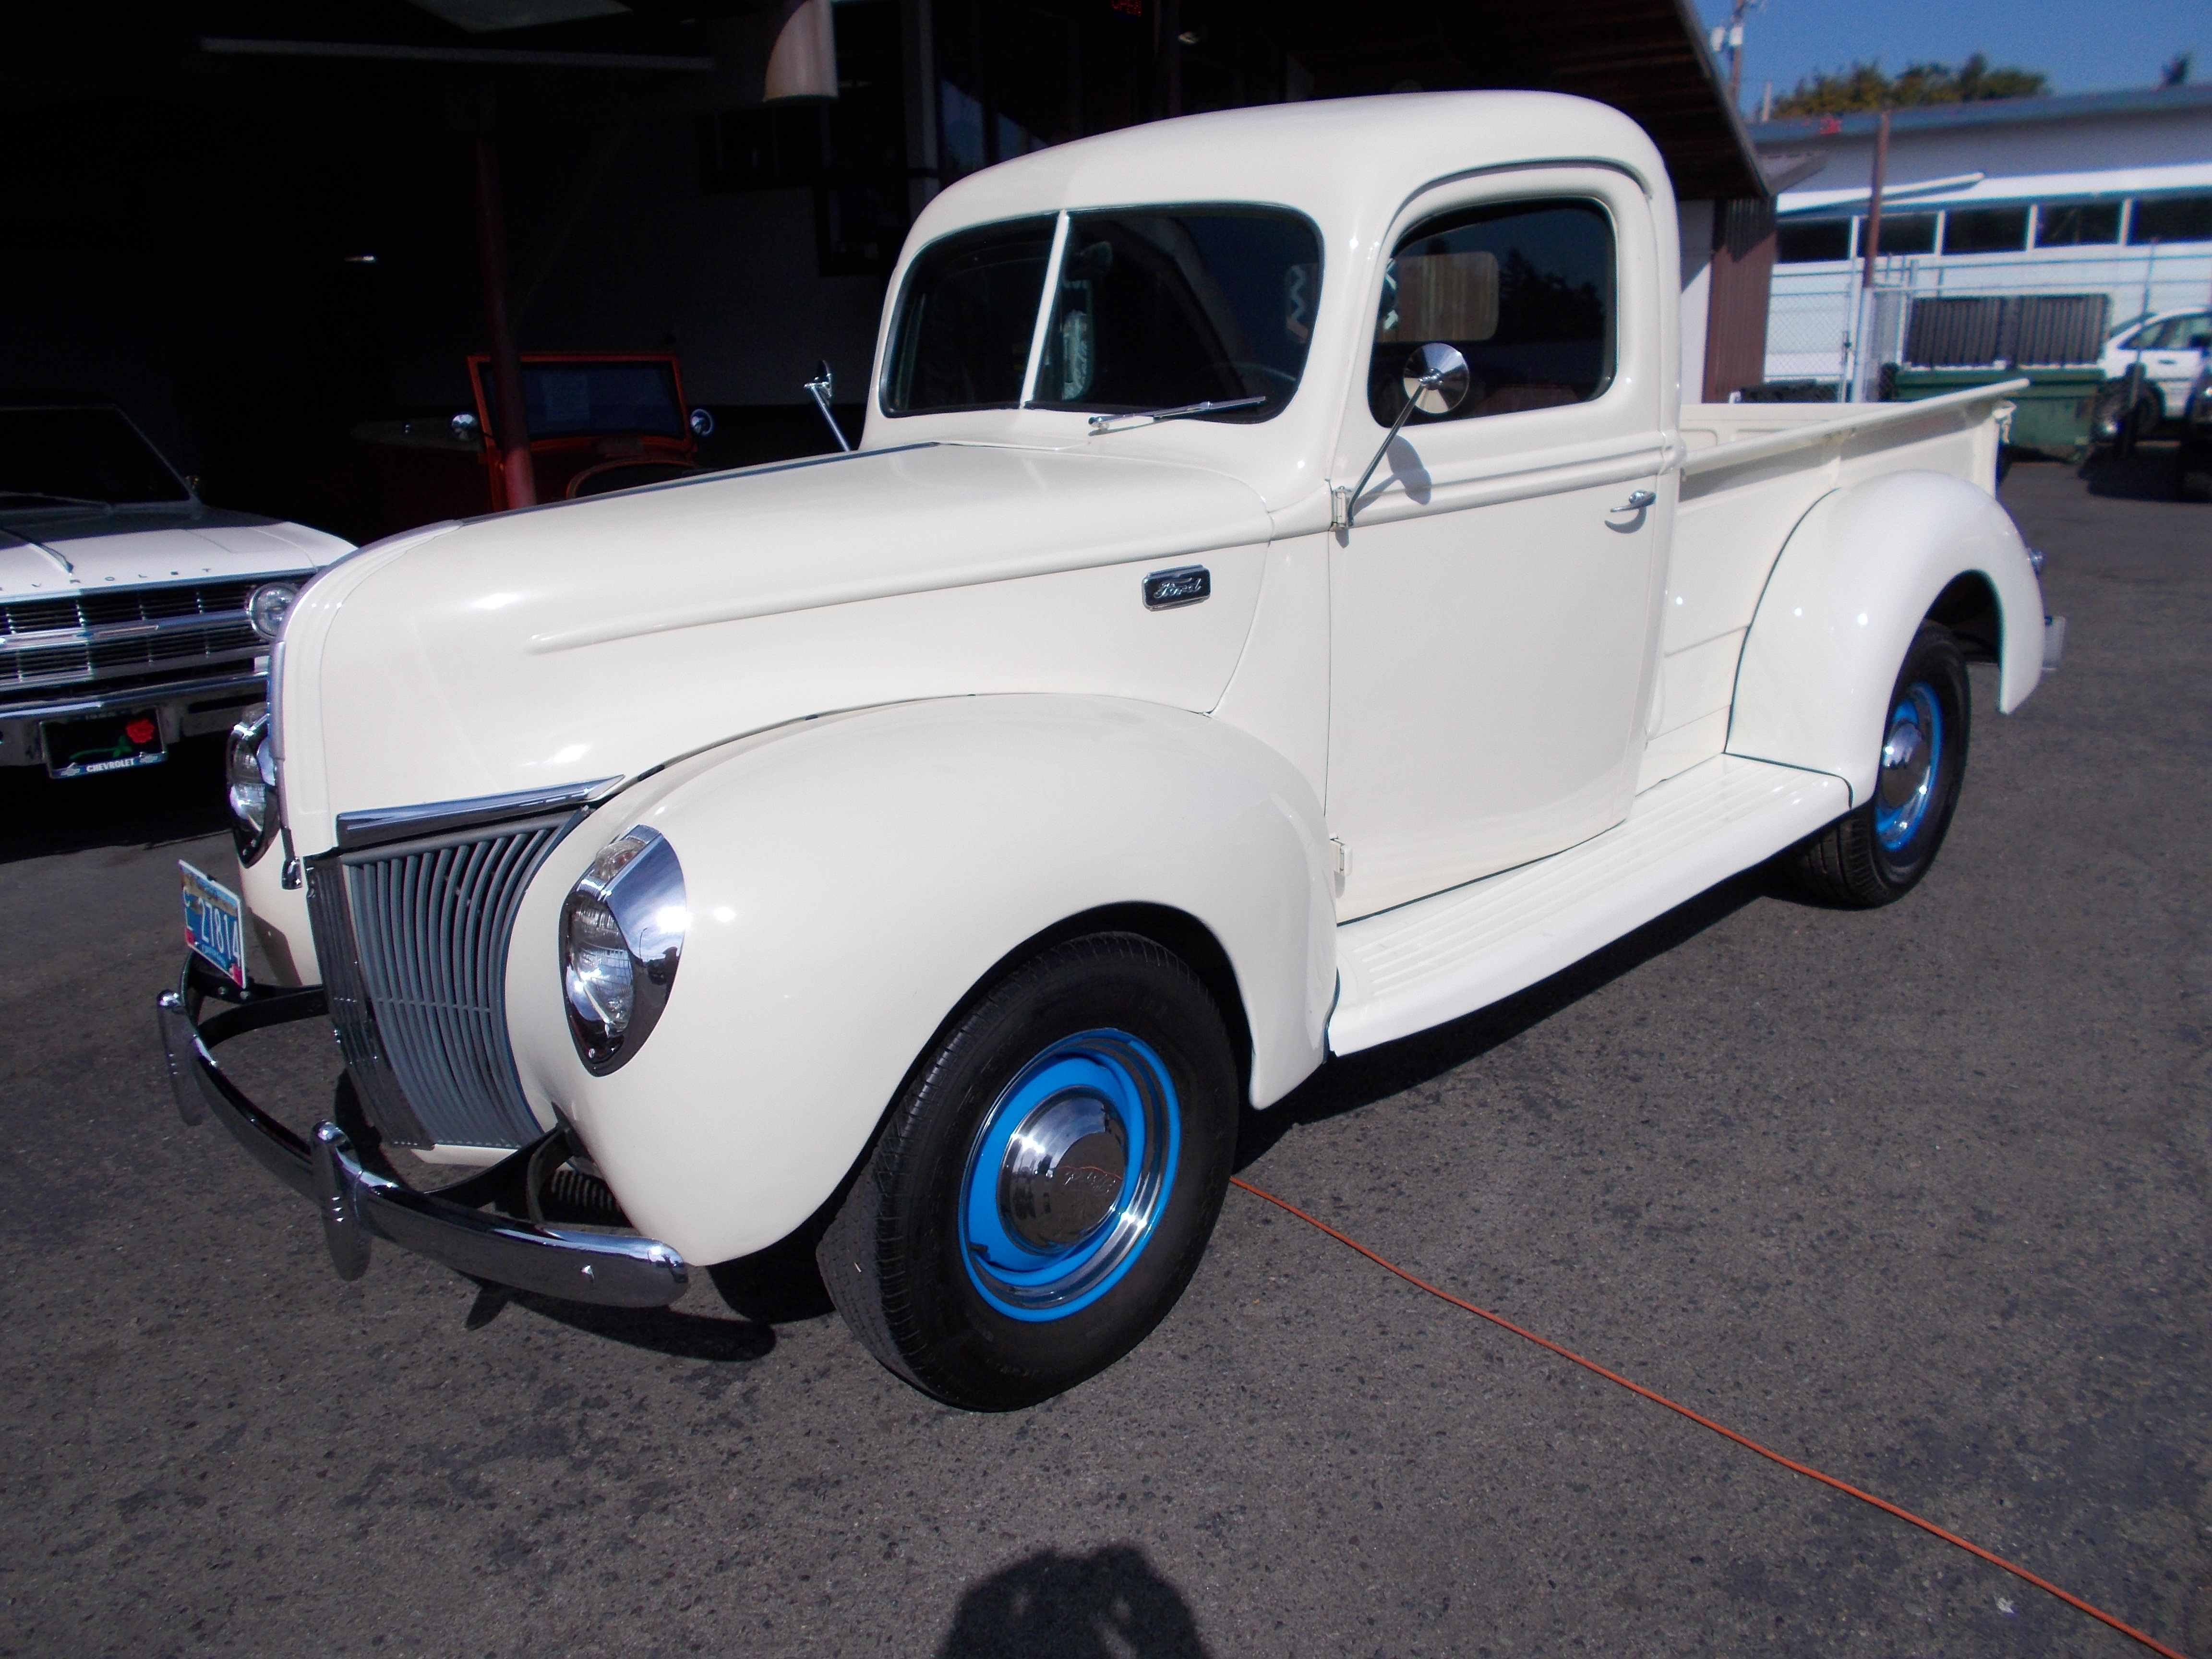 Hamilton Auto Sales 1955 Ford F100 Heater Parts 1941 Pu Restored Stock With Semi Hotrod Flat Head V 8 Original 3spd Transmission W 11 Inch Clutch And Running Gear Complete Motor Rebuild From